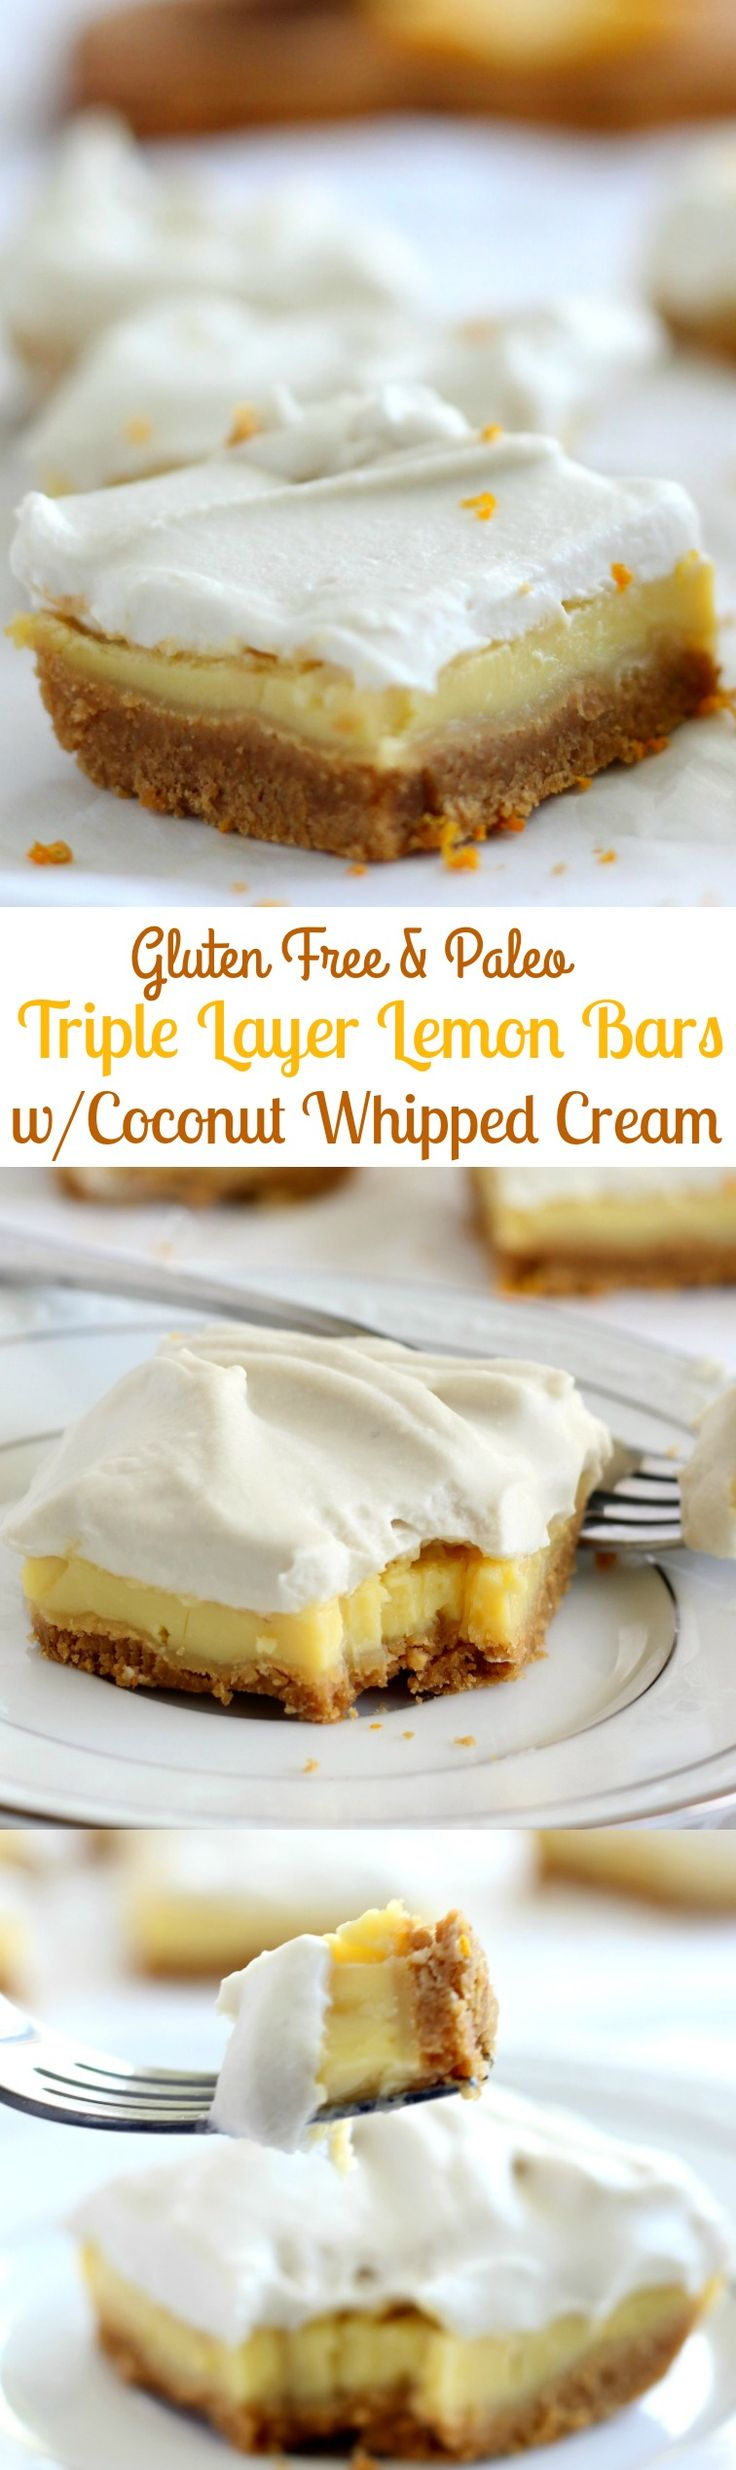 triple layer paleo lemon bars that are gluten free, dairy free, paleo - topped with easy coconut whipped cream